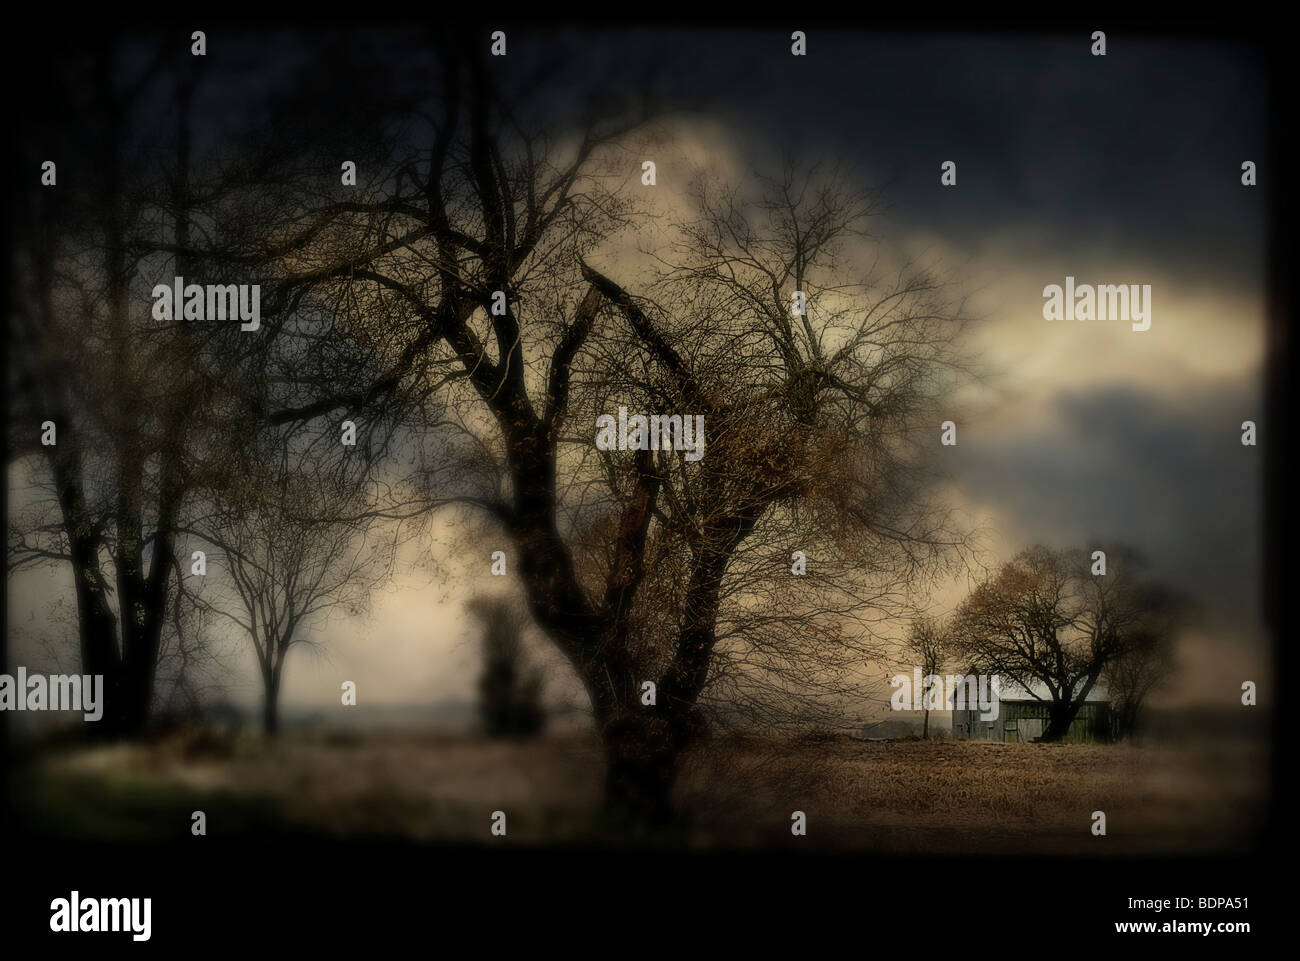 A blurred country scene with trees and farm building - Stock Image